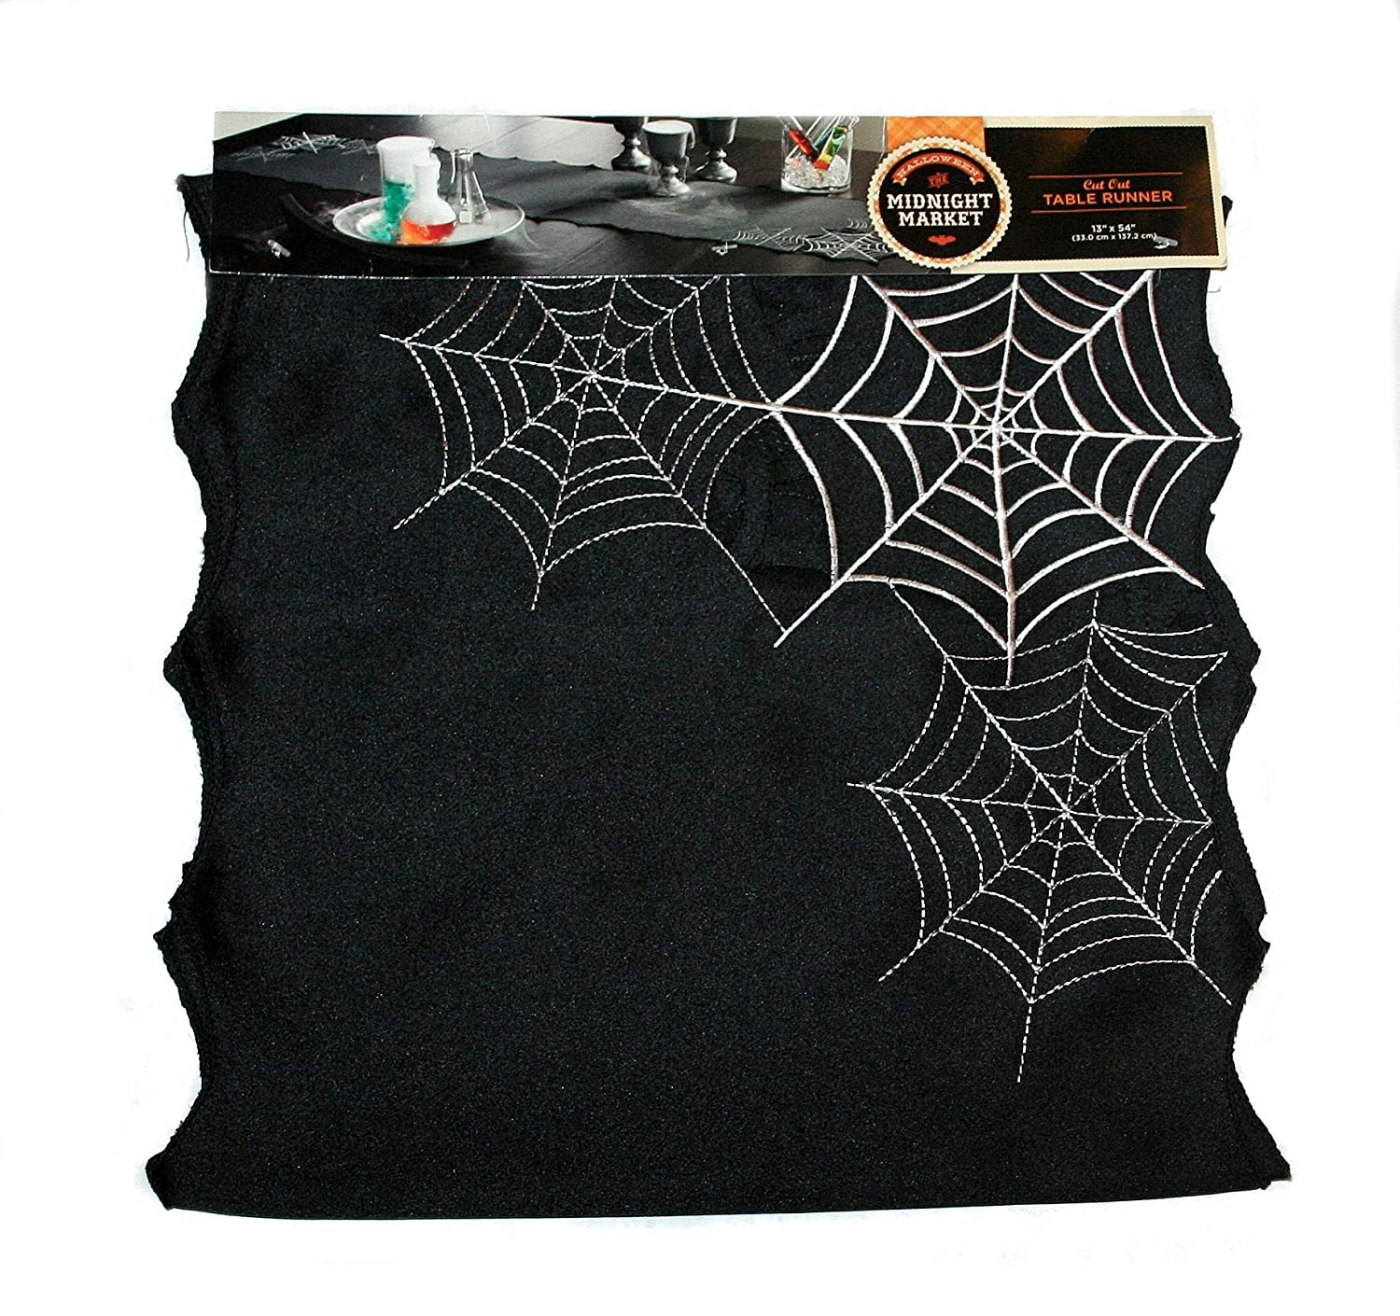 The Midnight Market Spider Web Cut Out Table Runner